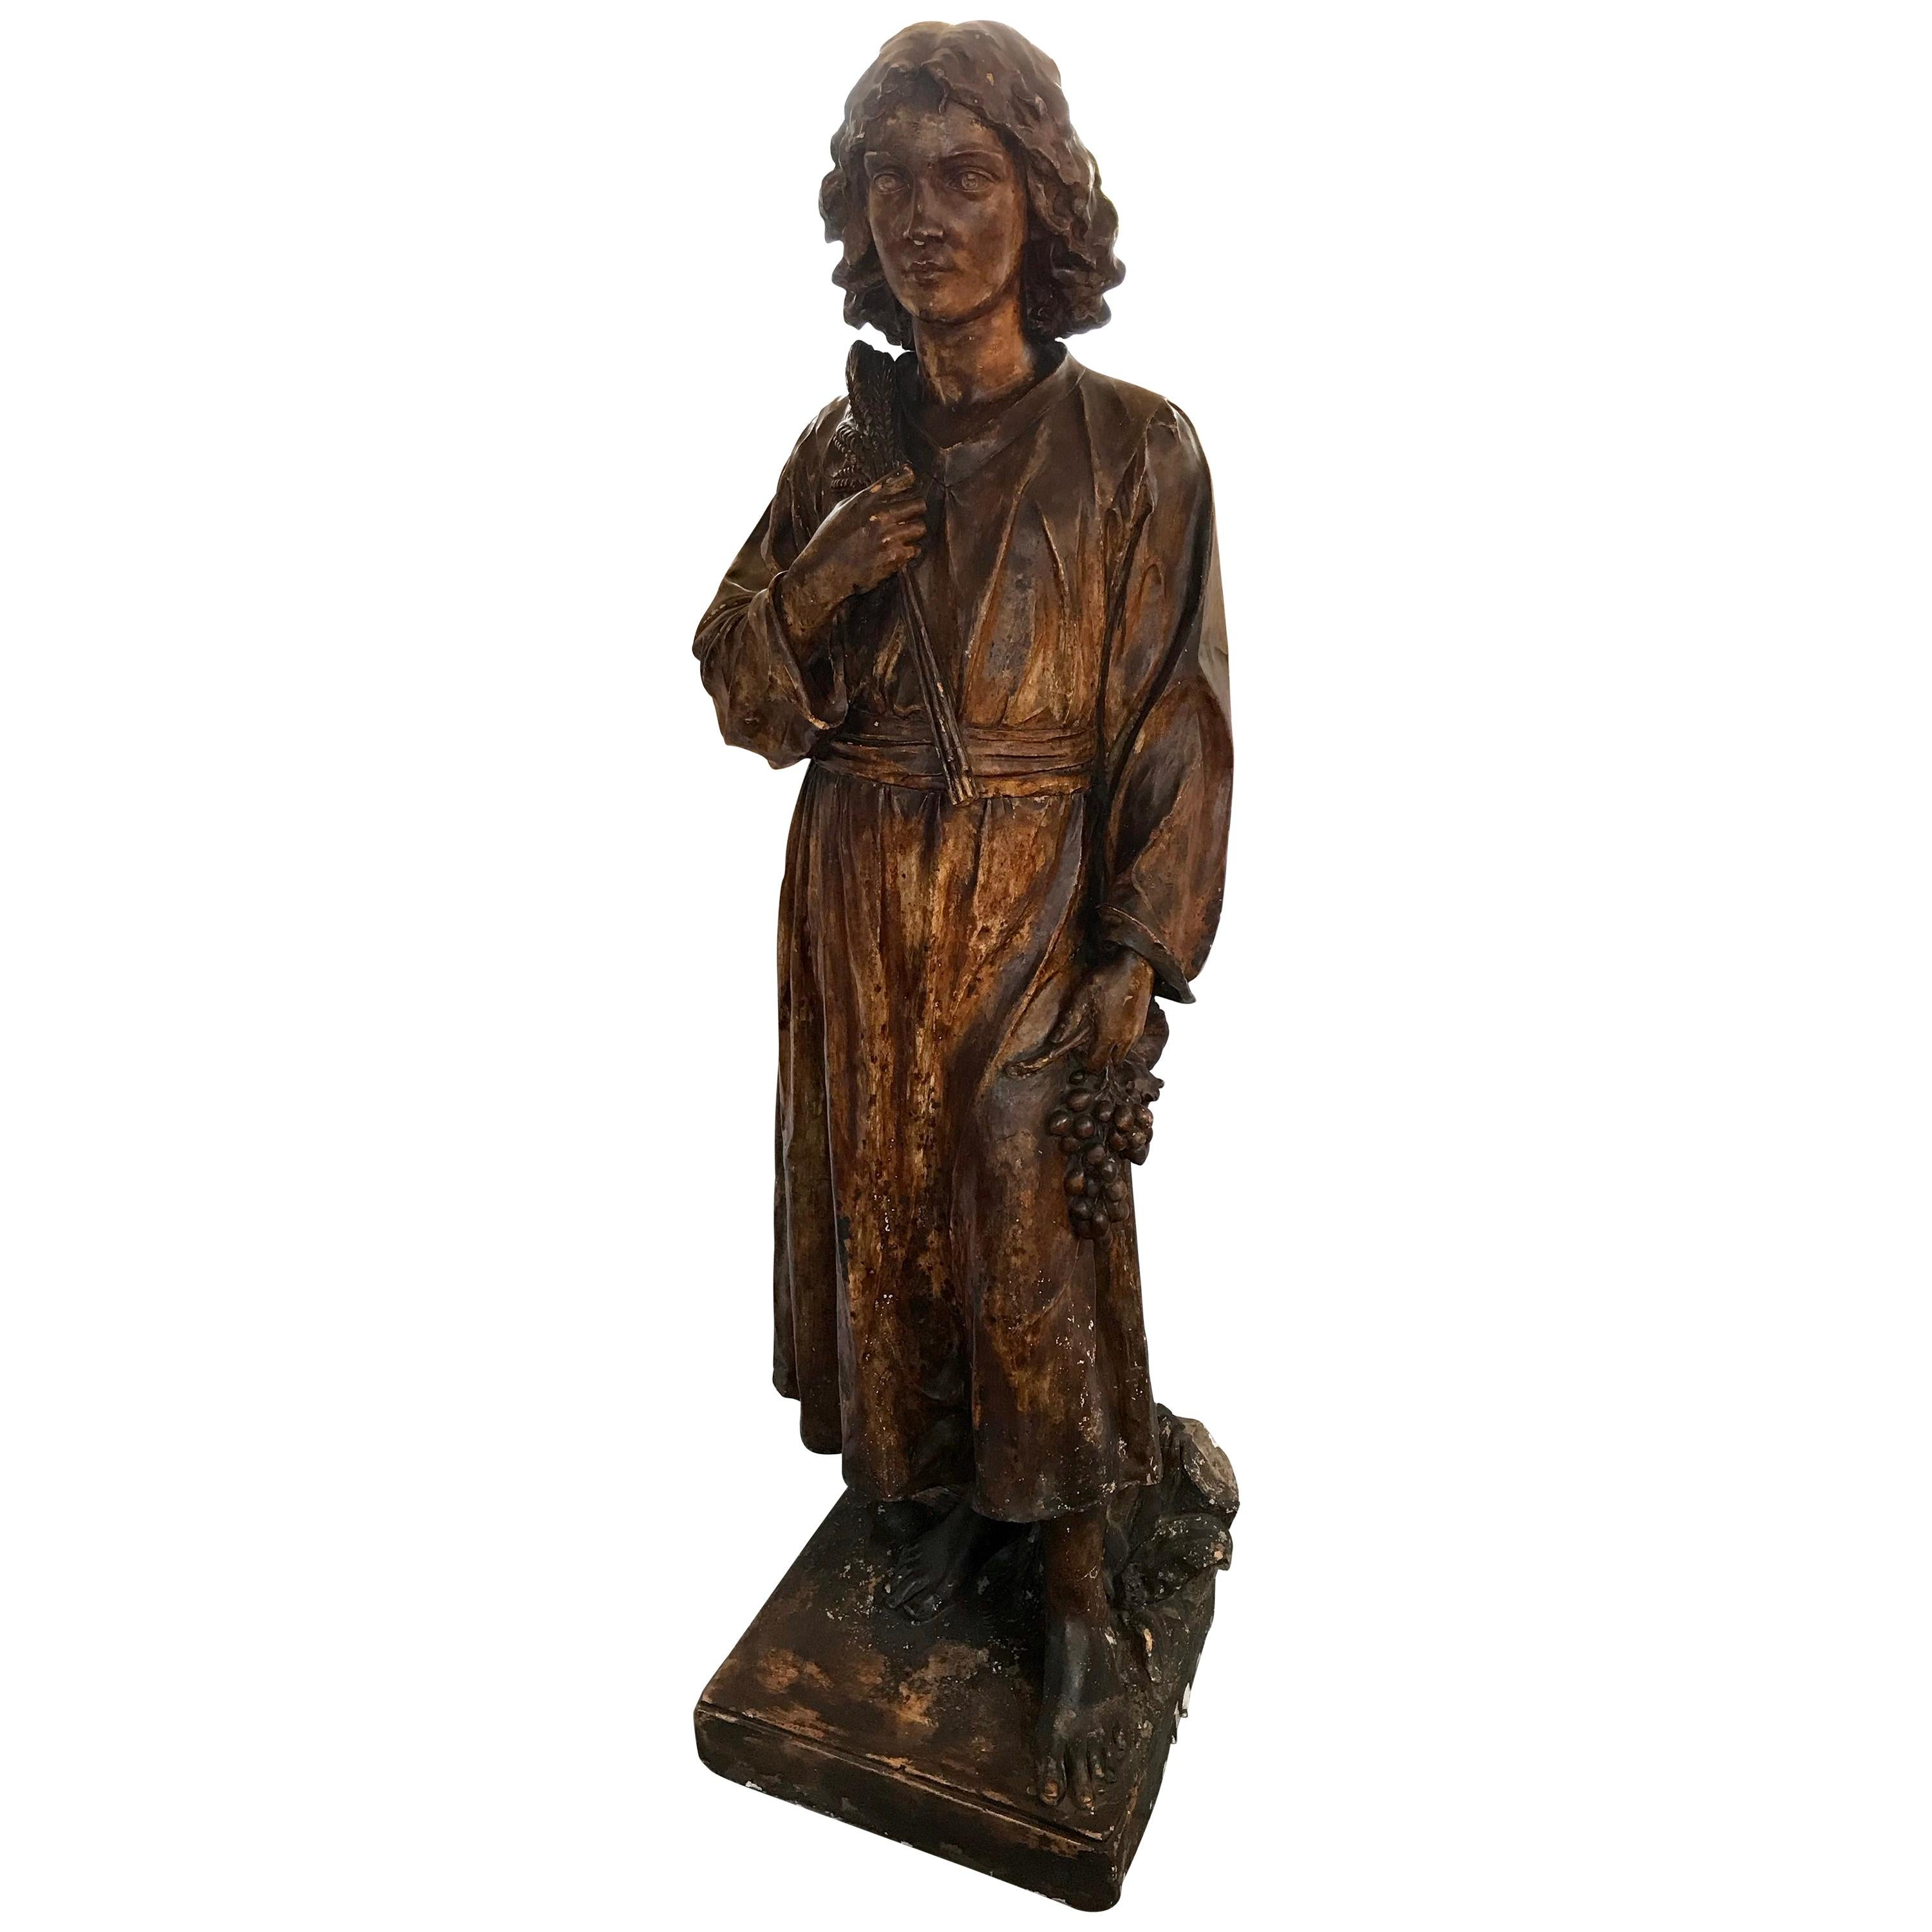 19th Century Life Size French Maquette Sculpture